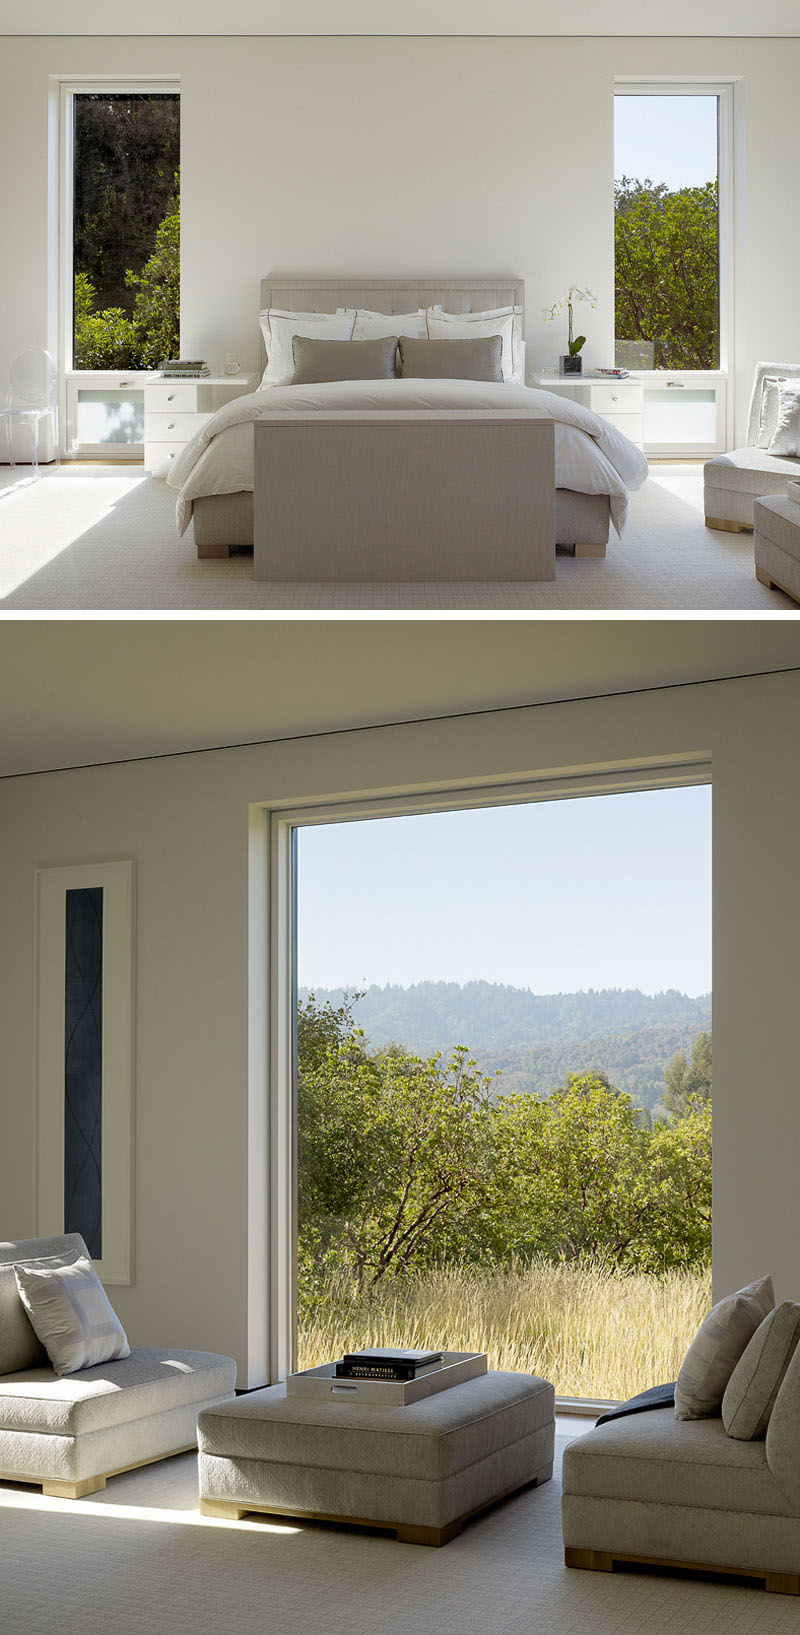 The Portola Valley Barn by Walker Warner Architects in California, USA